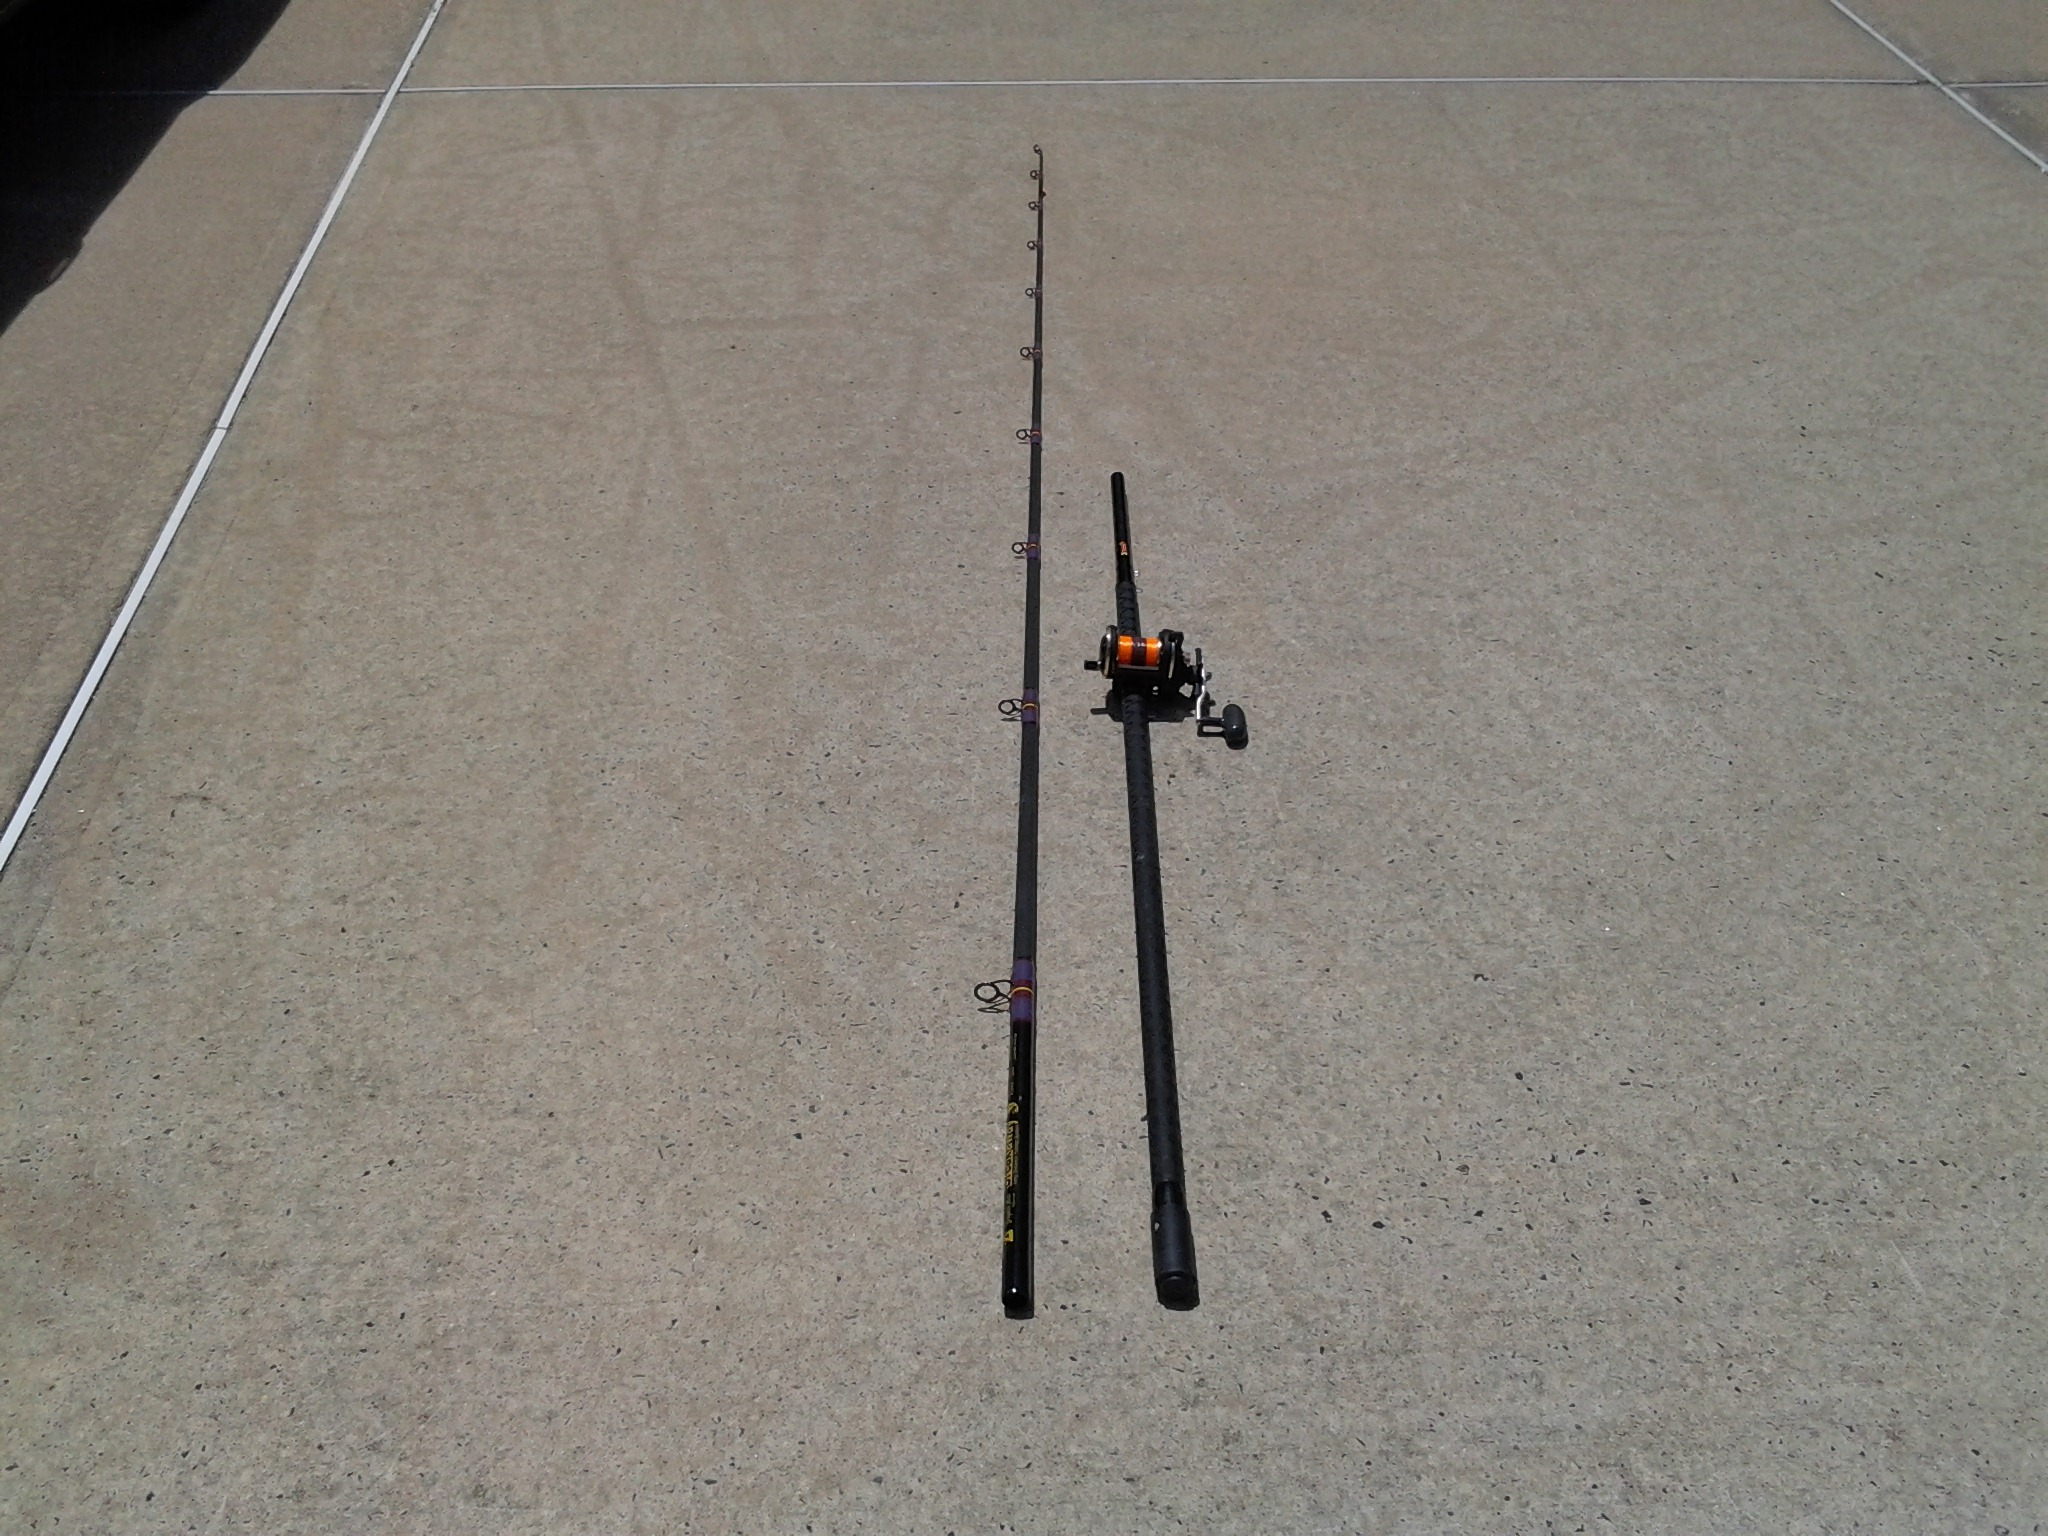 e61839637df WTS - Custom Hatteras Conventional Heaver Rod and Reel - General Buy ...